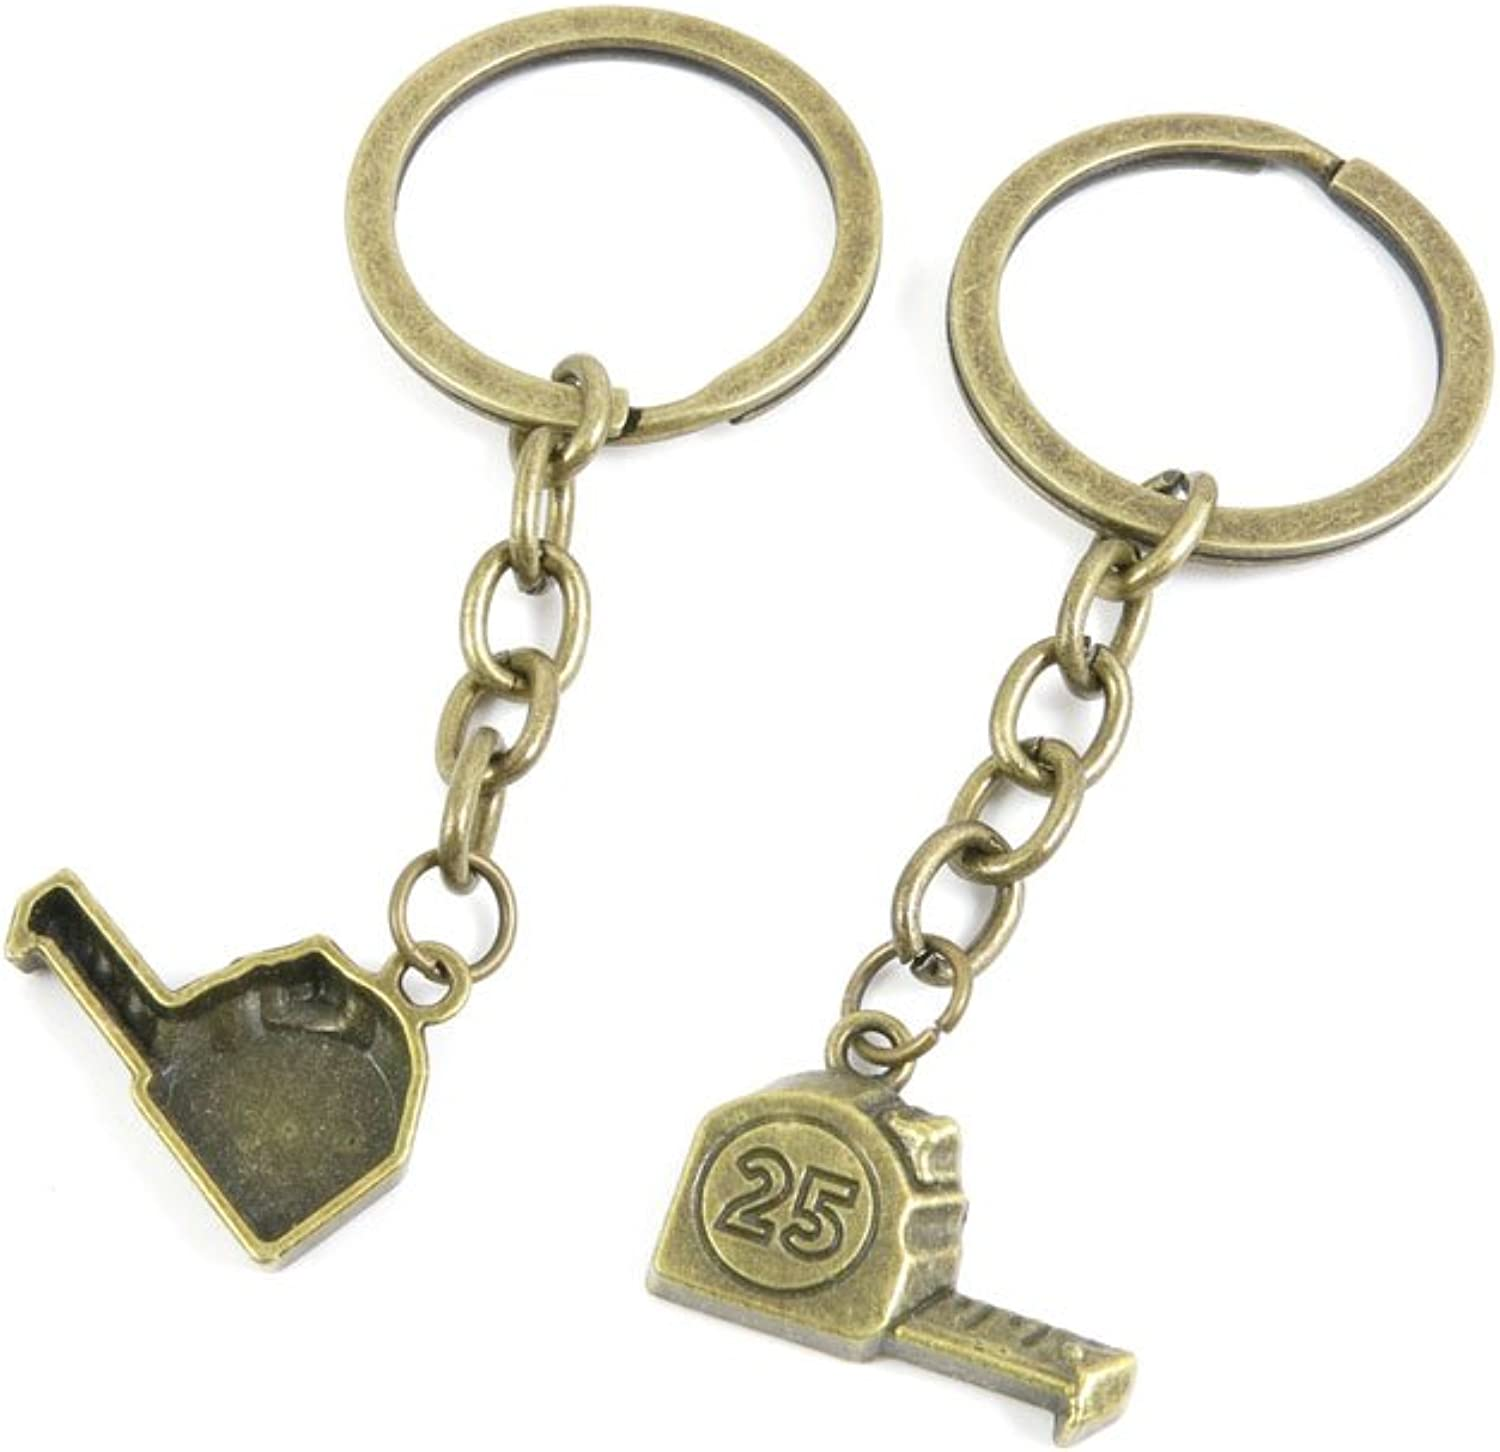 230 Pieces Fashion Jewelry Keyring Keychain Door Car Key Tag Ring Chain Supplier Supply Wholesale Bulk Lots I4WG6 Tape Measure